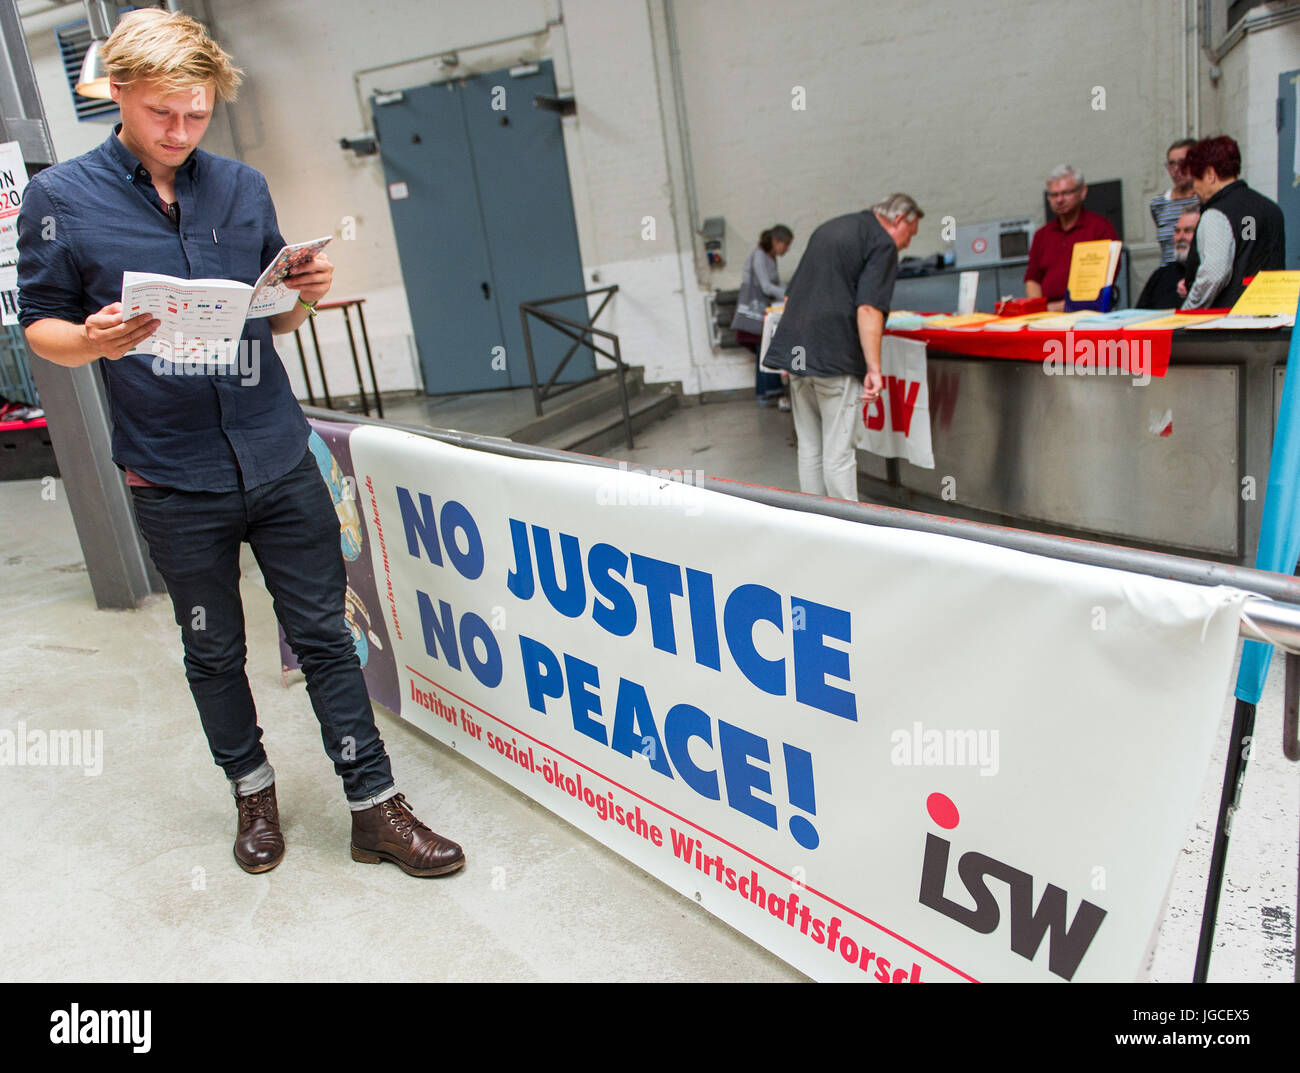 Hamburg, Germany. 5th July, 2017. A visitor reads a brochure at the Global Solidarity Summit in Hamburg, Germany, - Stock Image